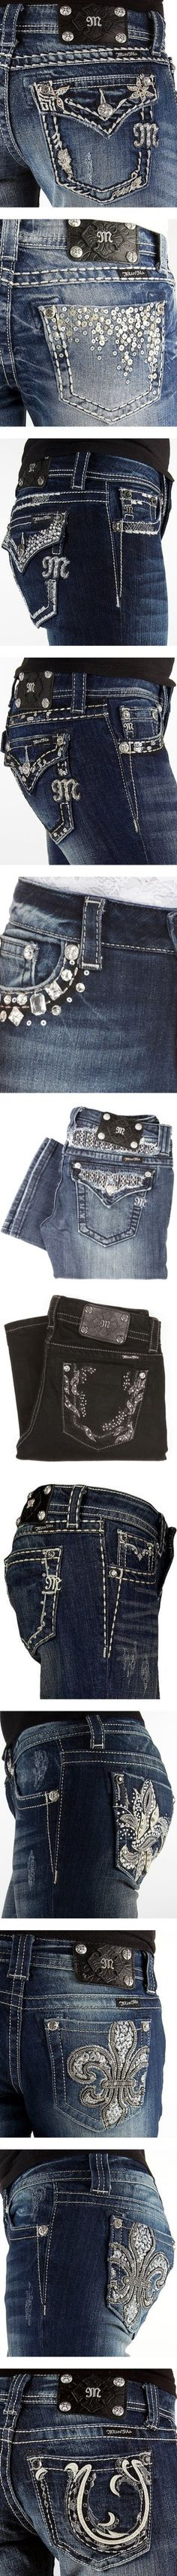 My Favorite Jeans|Miss Me « Evoking You|Fashion Inspiration Blog